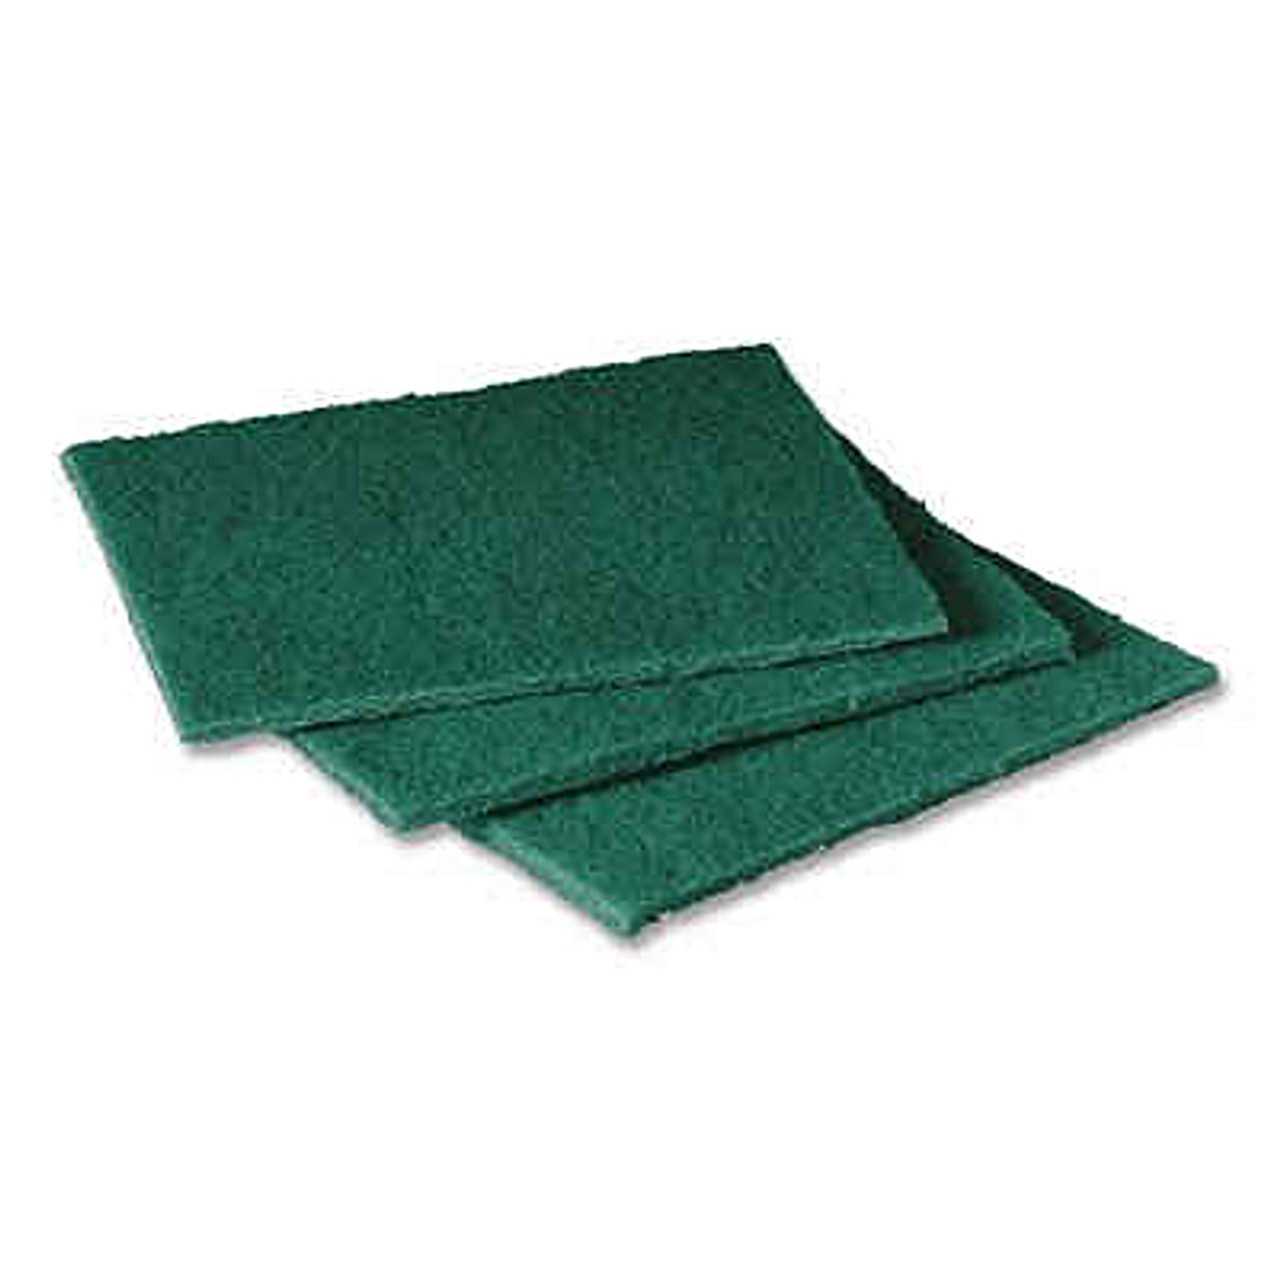 Scotch Brite #96 Scouring Pads last 2 to 3 times longer than other scouring pads.